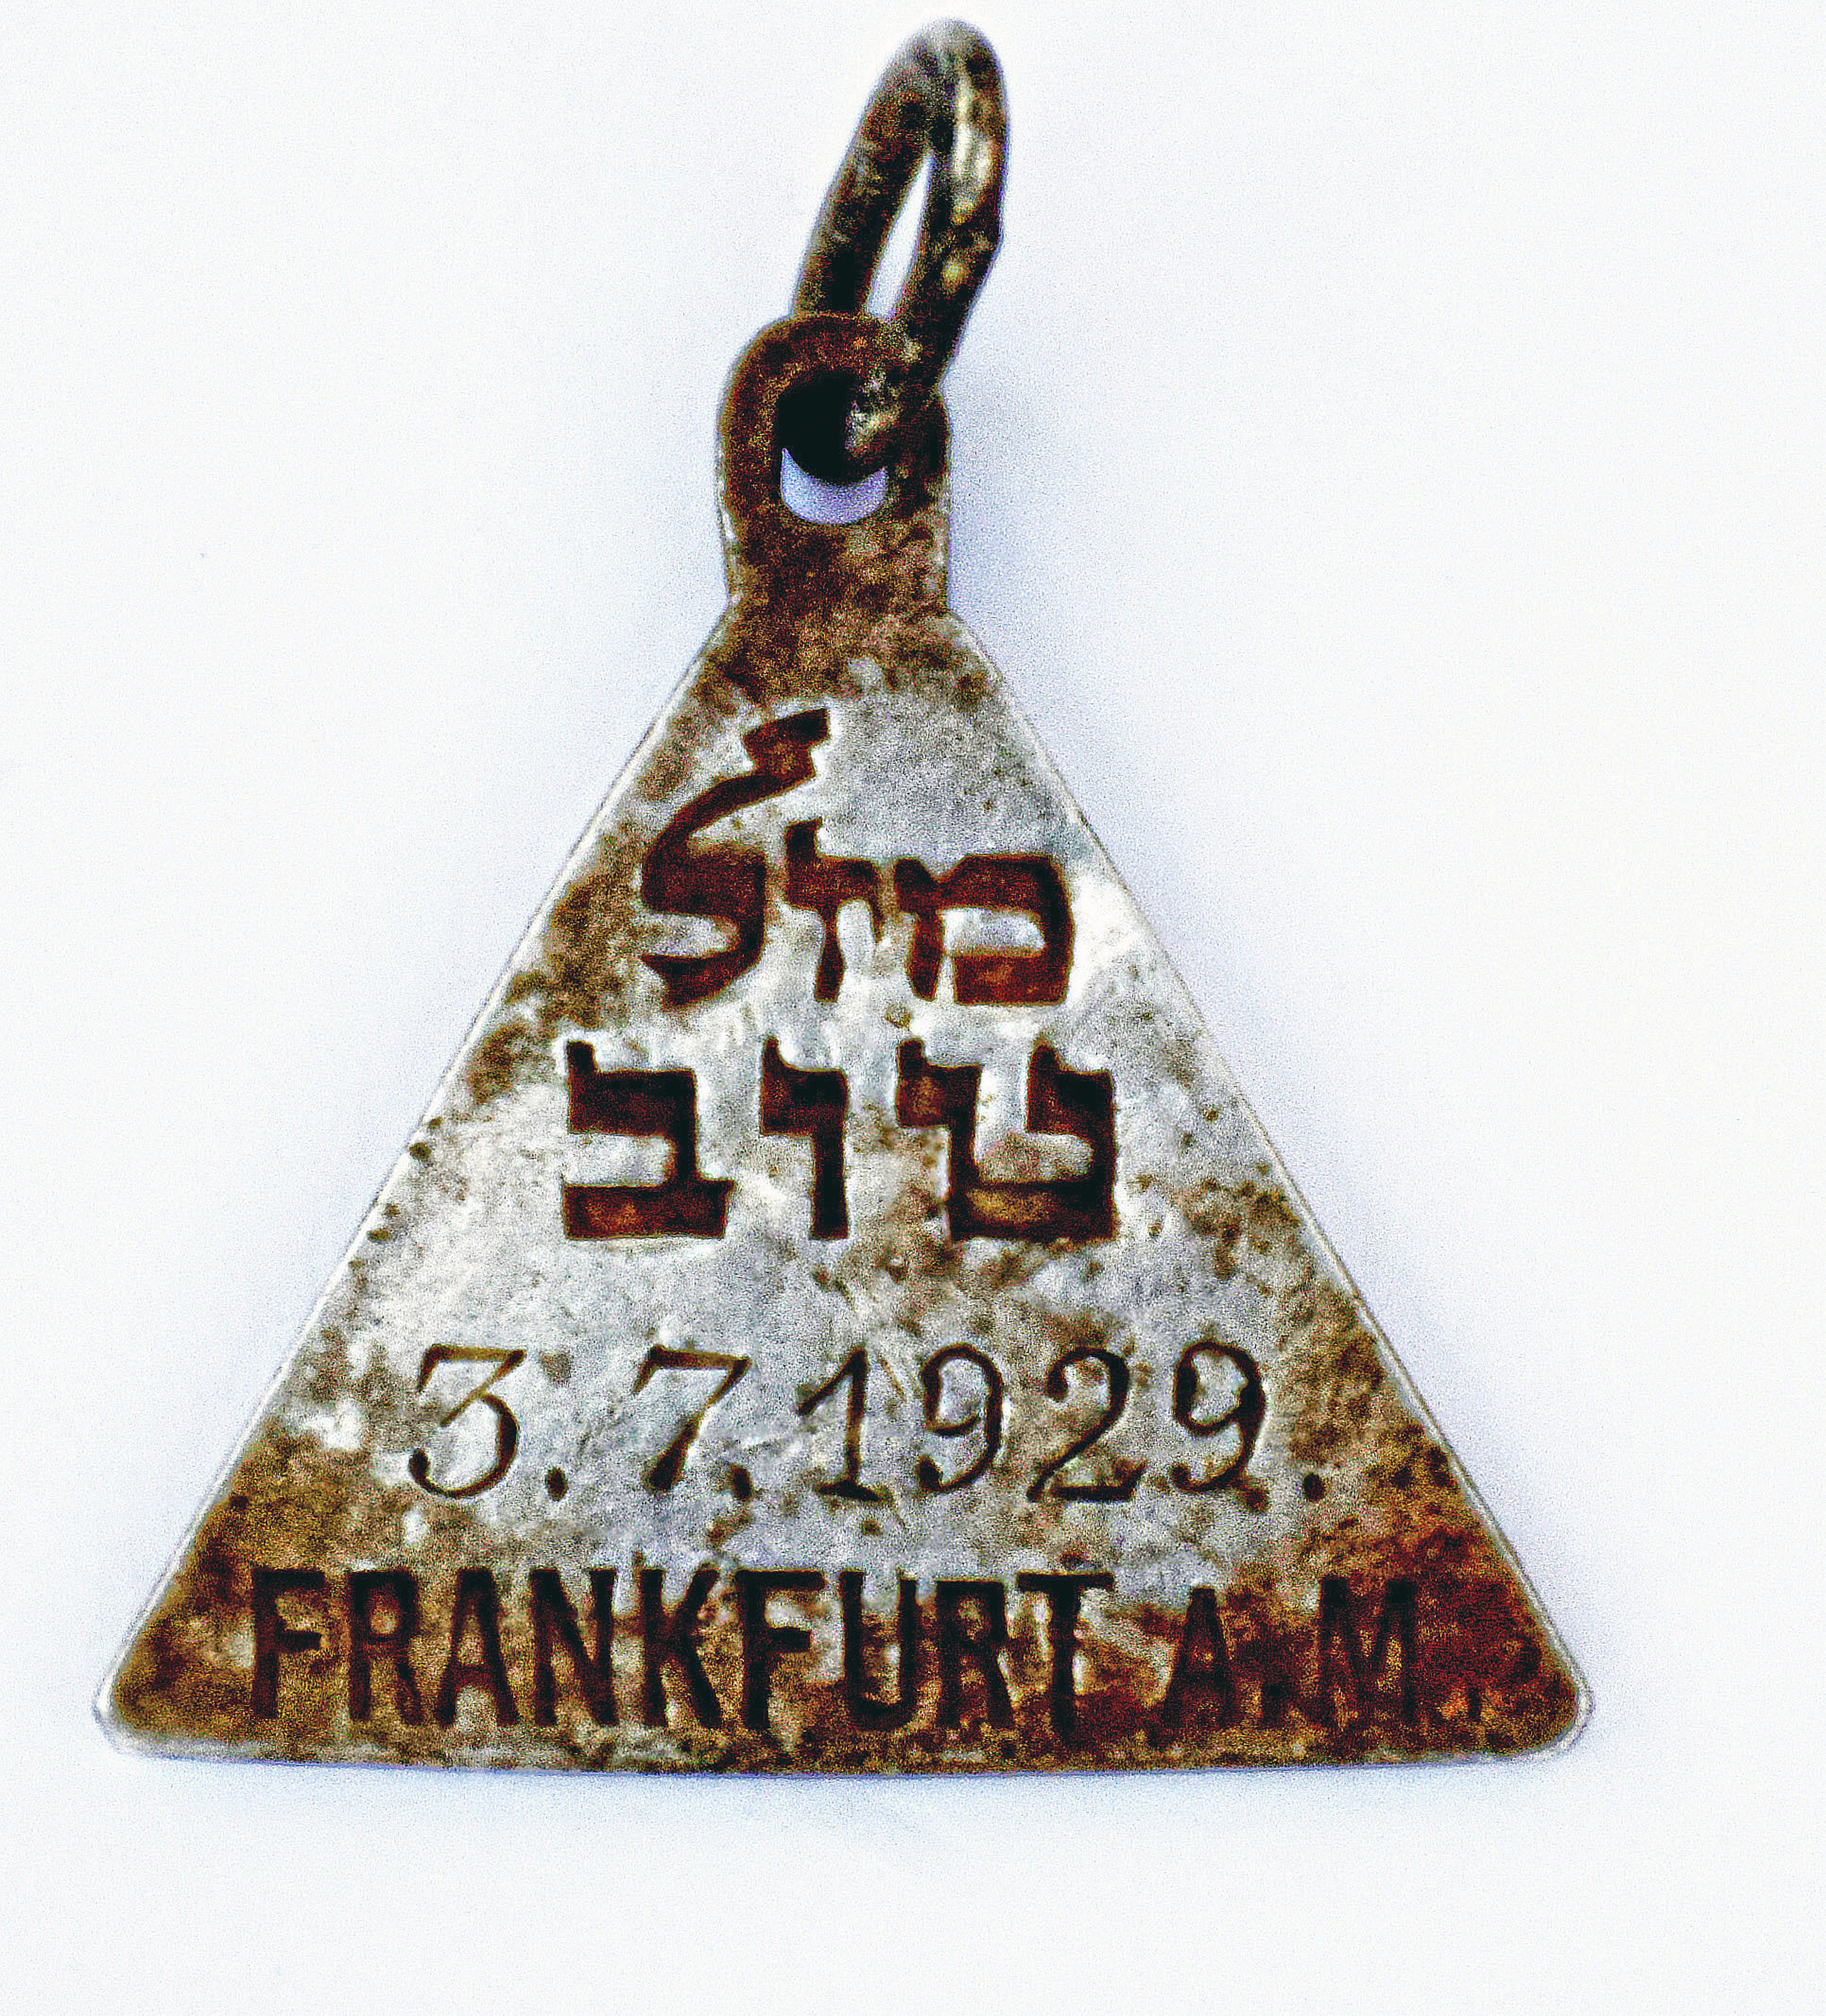 This undated photograph released by the Israel Antiquities Authority shows a pendant that appears identical to one belonging to Anne Frank, Israel's Yad Vashem Holocaust memorial said Sunday. Yad Vashem says it has ascertained the pendant belonged to Karoline Cohn _ a Jewish girl who perished at Sobibor and may have been connected to the famous diarist. Both were born in Frankfurt in 1929 and historians have found no other pendants like theirs. The triangular piece found has the words  Mazal Tov  written in Hebrew on one side along with Cohn's date of birth and the Hebrew letter  heh,  an initial for God, as well as three Stars of David on the other.